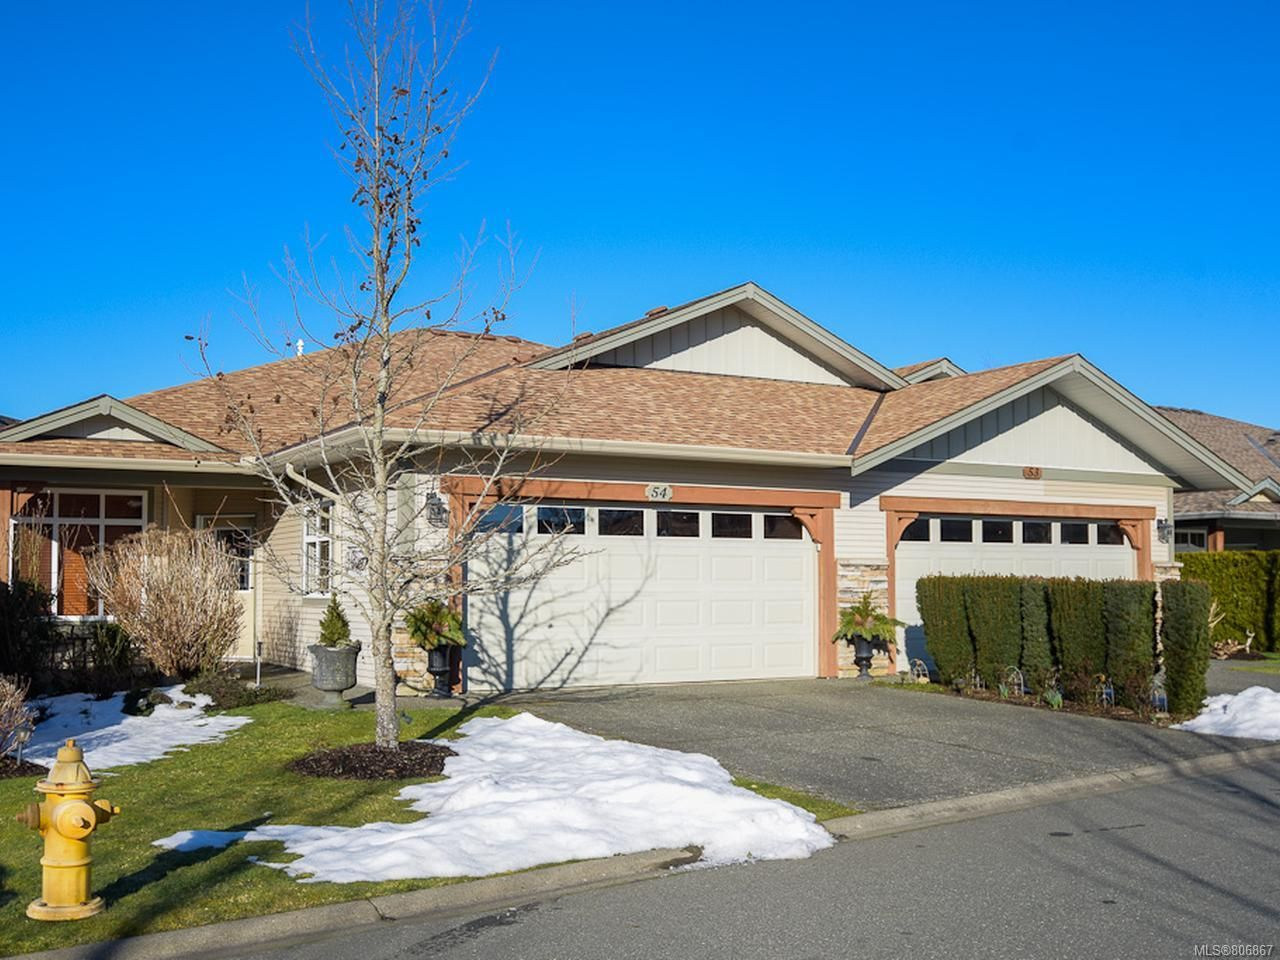 Main Photo: 54 2300 MURRELET DRIVE in COMOX: CV Comox (Town of) Row/Townhouse for sale (Comox Valley)  : MLS®# 806867